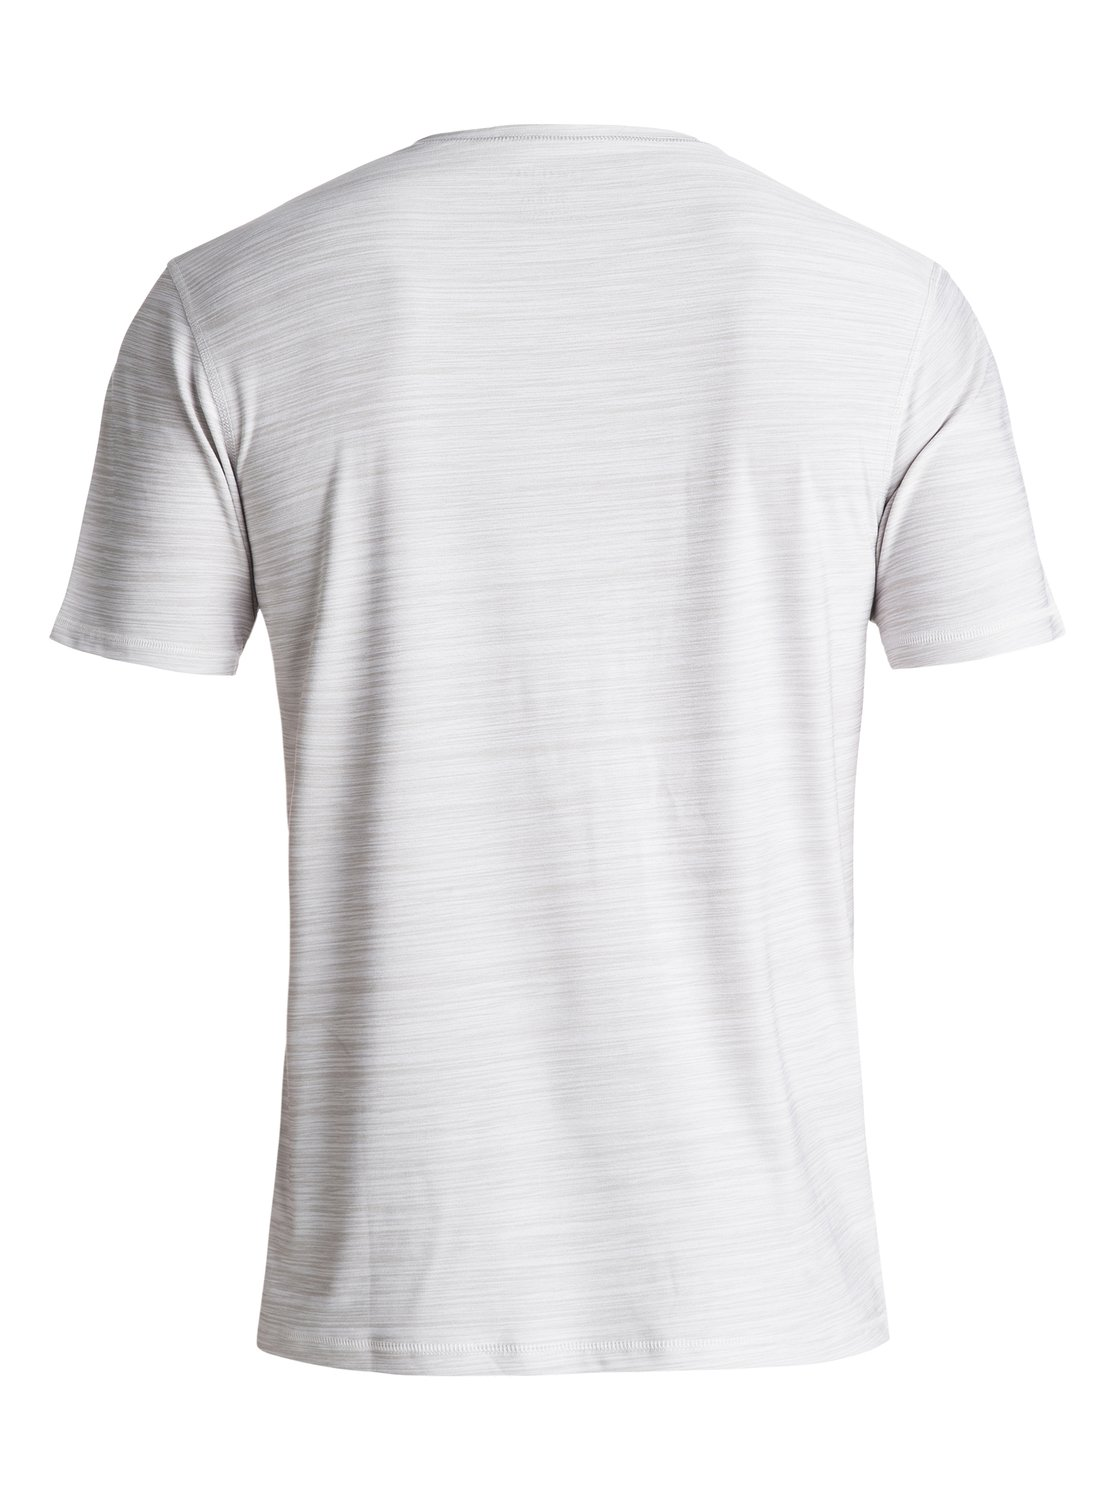 Lycra Quiksilver Scrypto Surf Amphibian Tee (White) Ss18